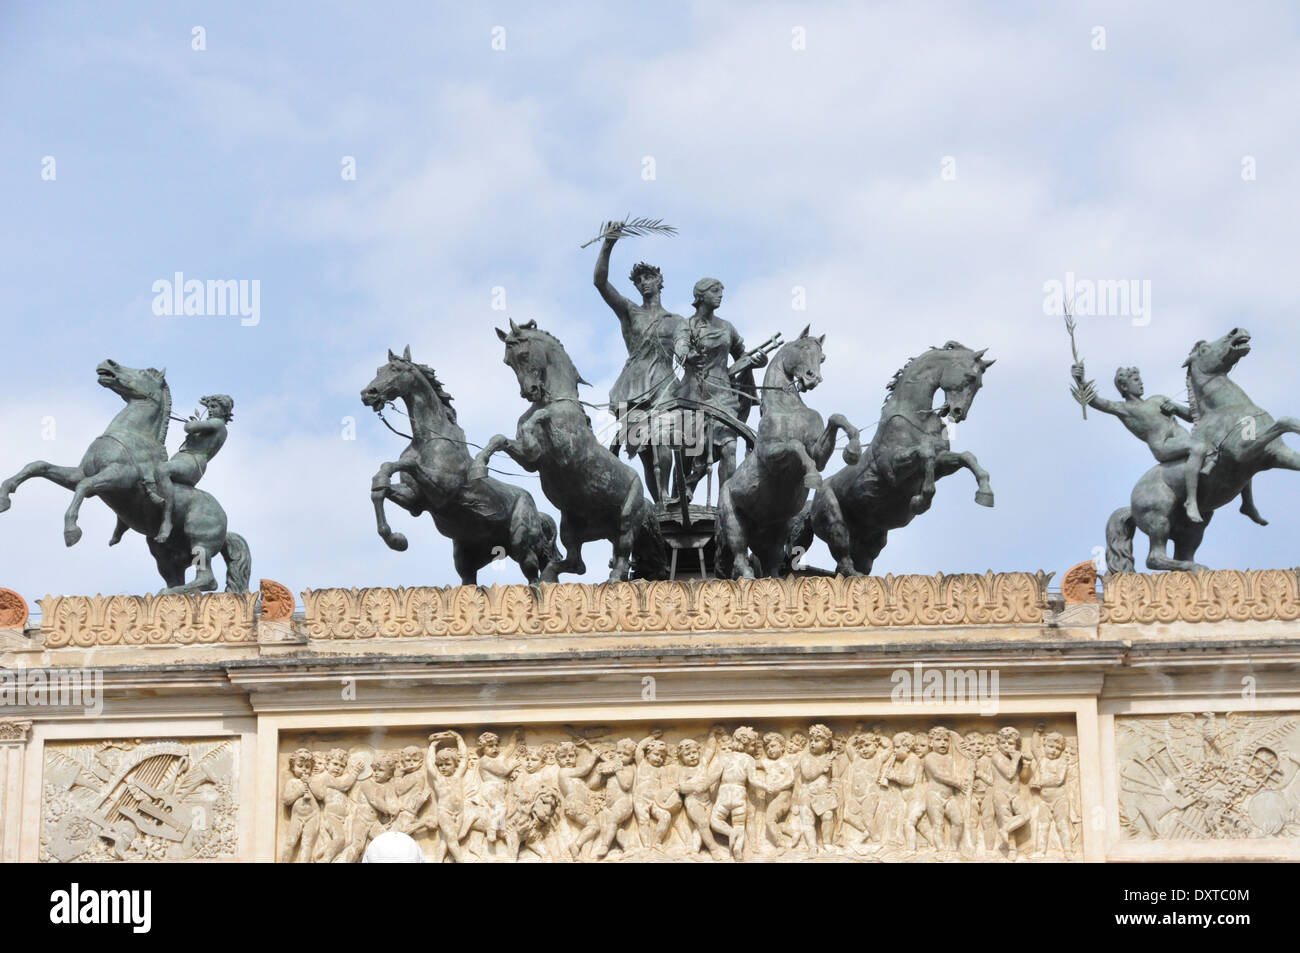 Statues of Garibaldi and horsemen on top of the arch in front of the Teatro Politeama Garibaldi, Palermo, Sicily Stock Photo